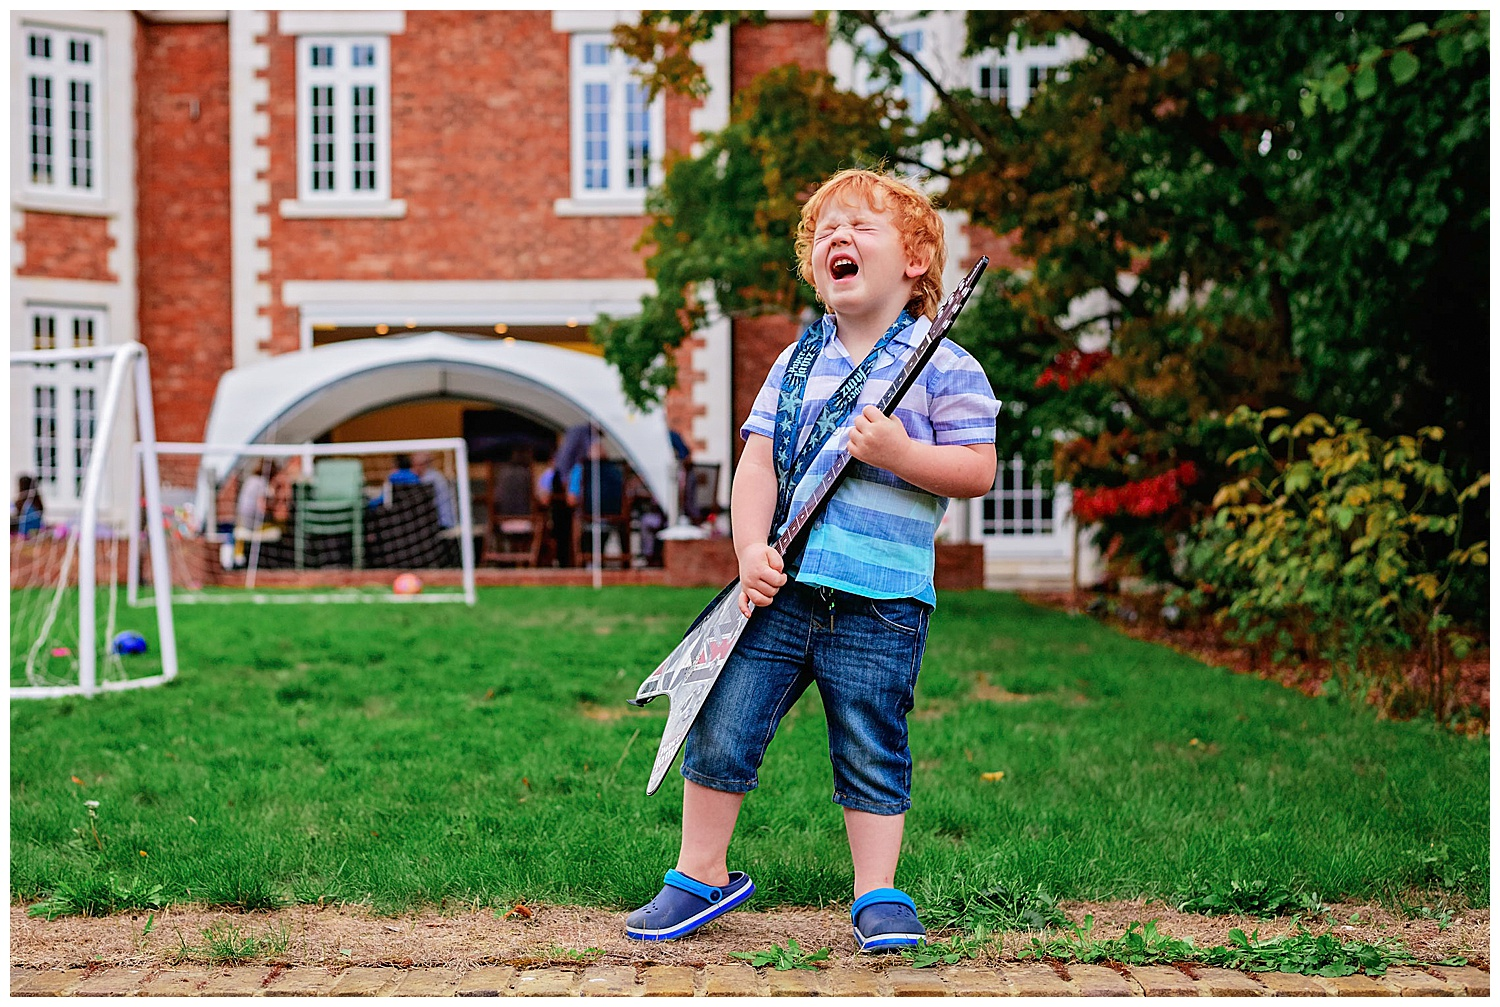 Party Photographer captures young boy stood with a guitar pretending to pull a rock star's face